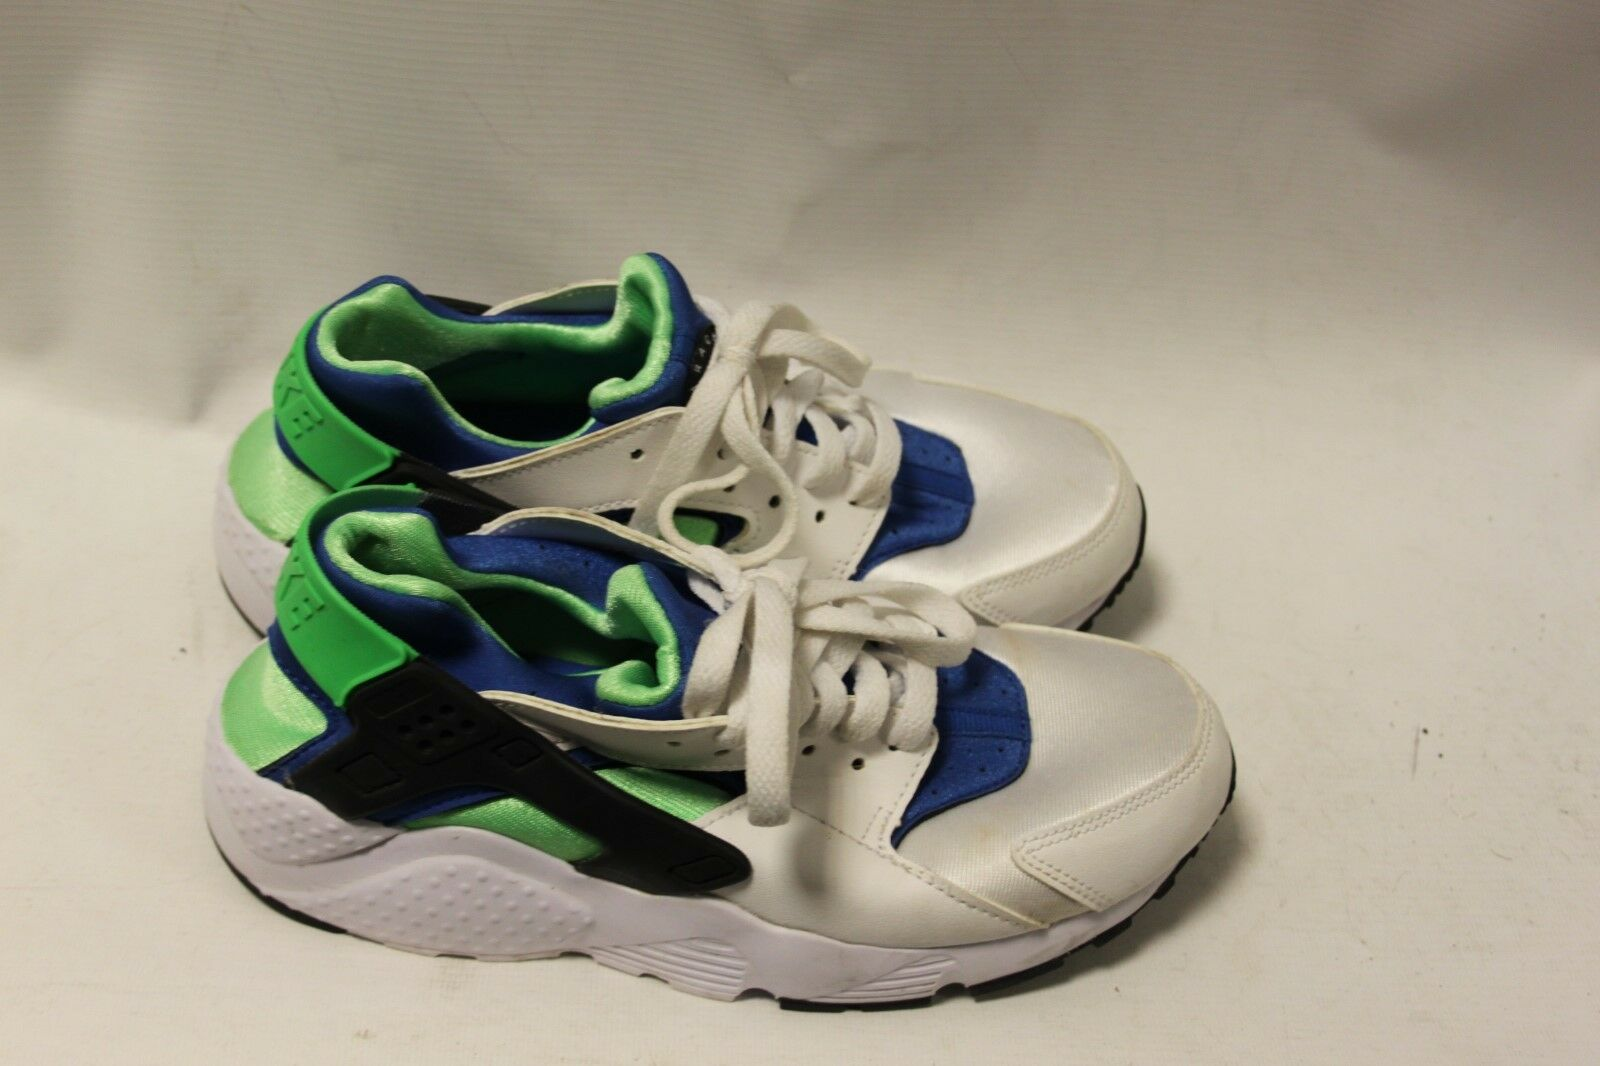 Nike Hurache Trainers Worn Size 38.5 uk 5.5 Worn Trainers Once  Training Shoes 9e88dd